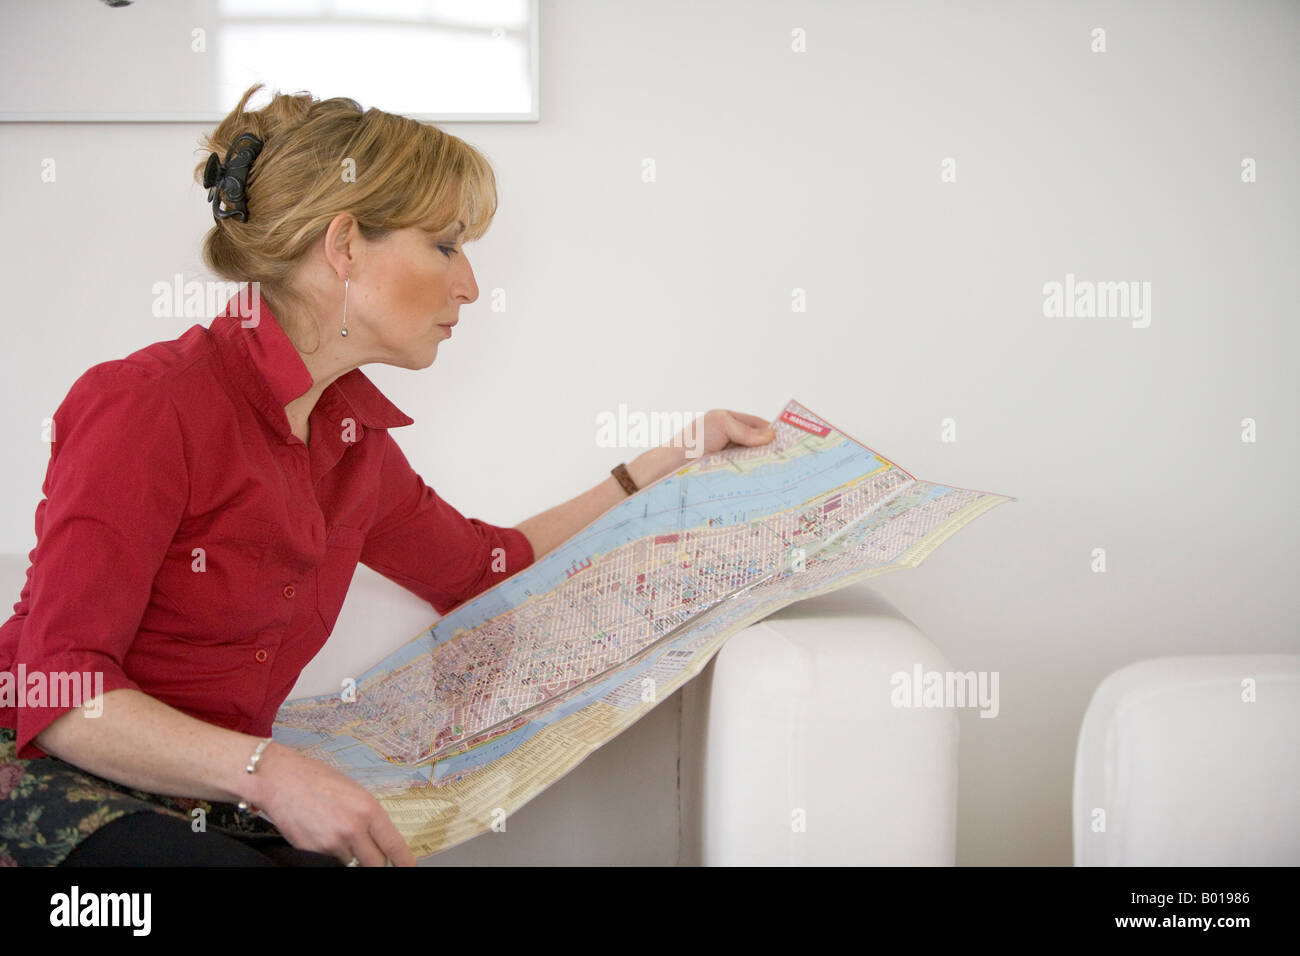 Senior woman reading a map - Stock Image